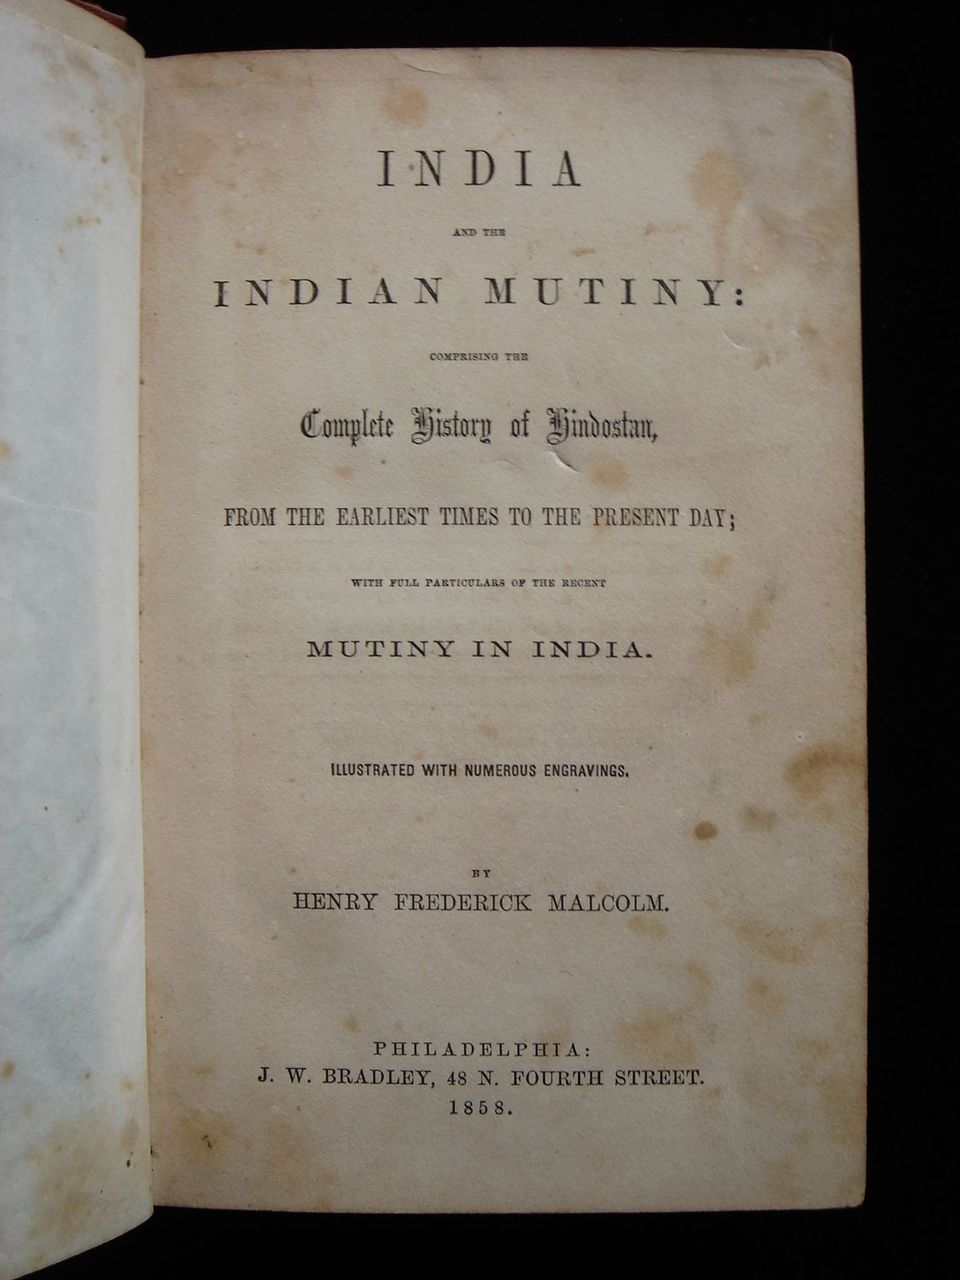 INDIA AND THE INDIAN MUTINY, by Henry Malcolm - 1858 [1st Ed]